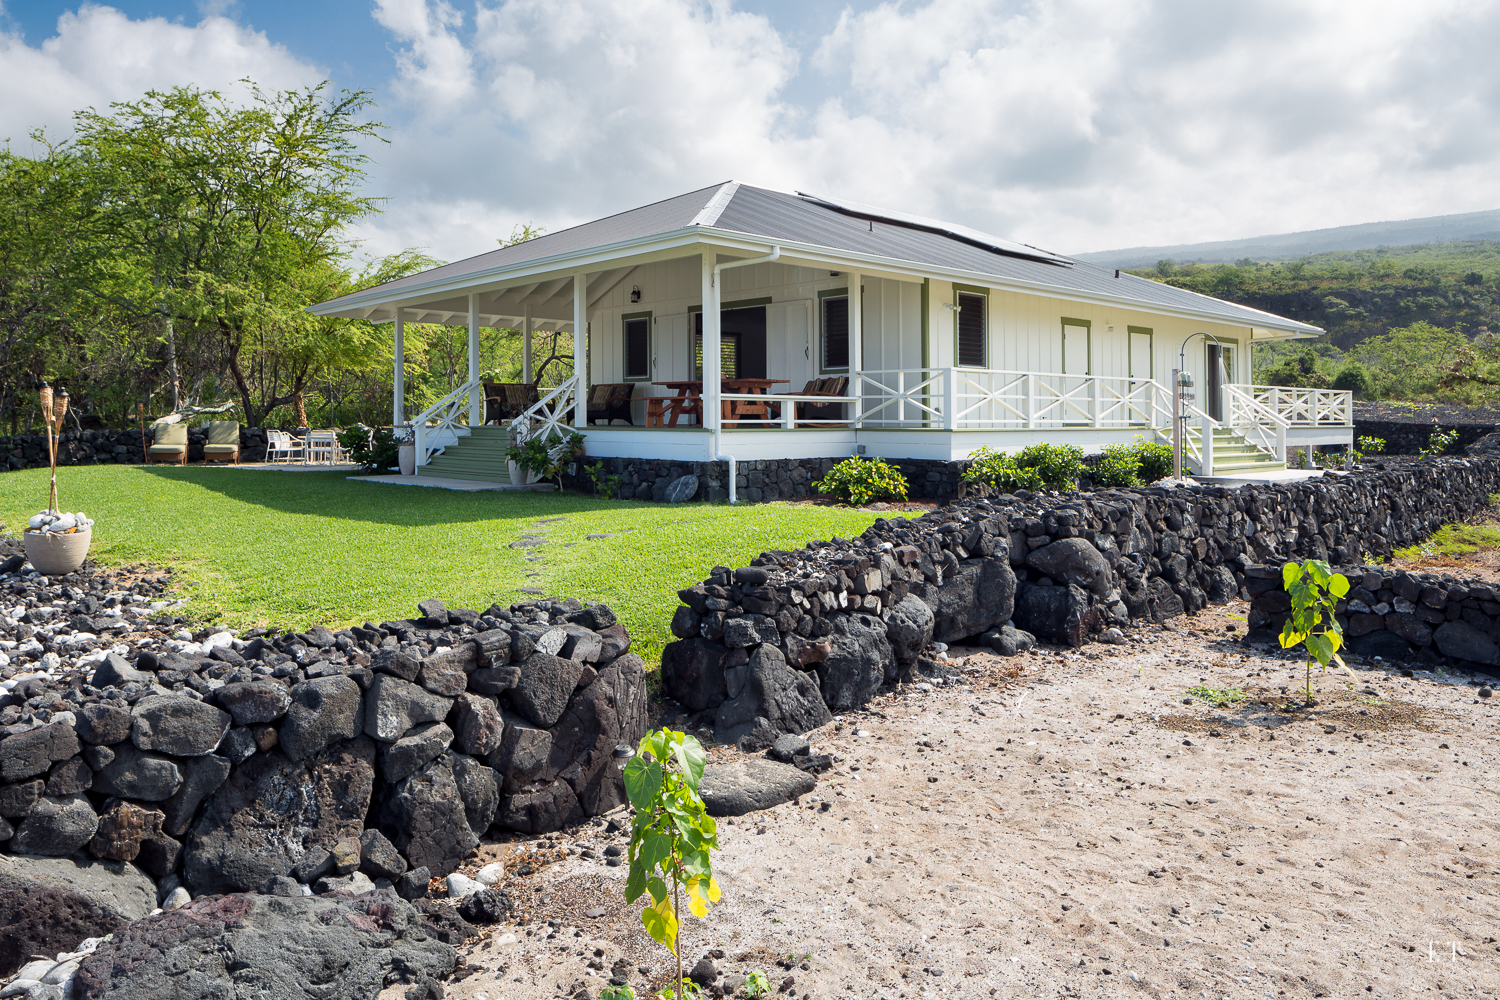 The Beach Shack at Kalahiki, South Kona, Big Island Hawaii - Nanea Studios Inc